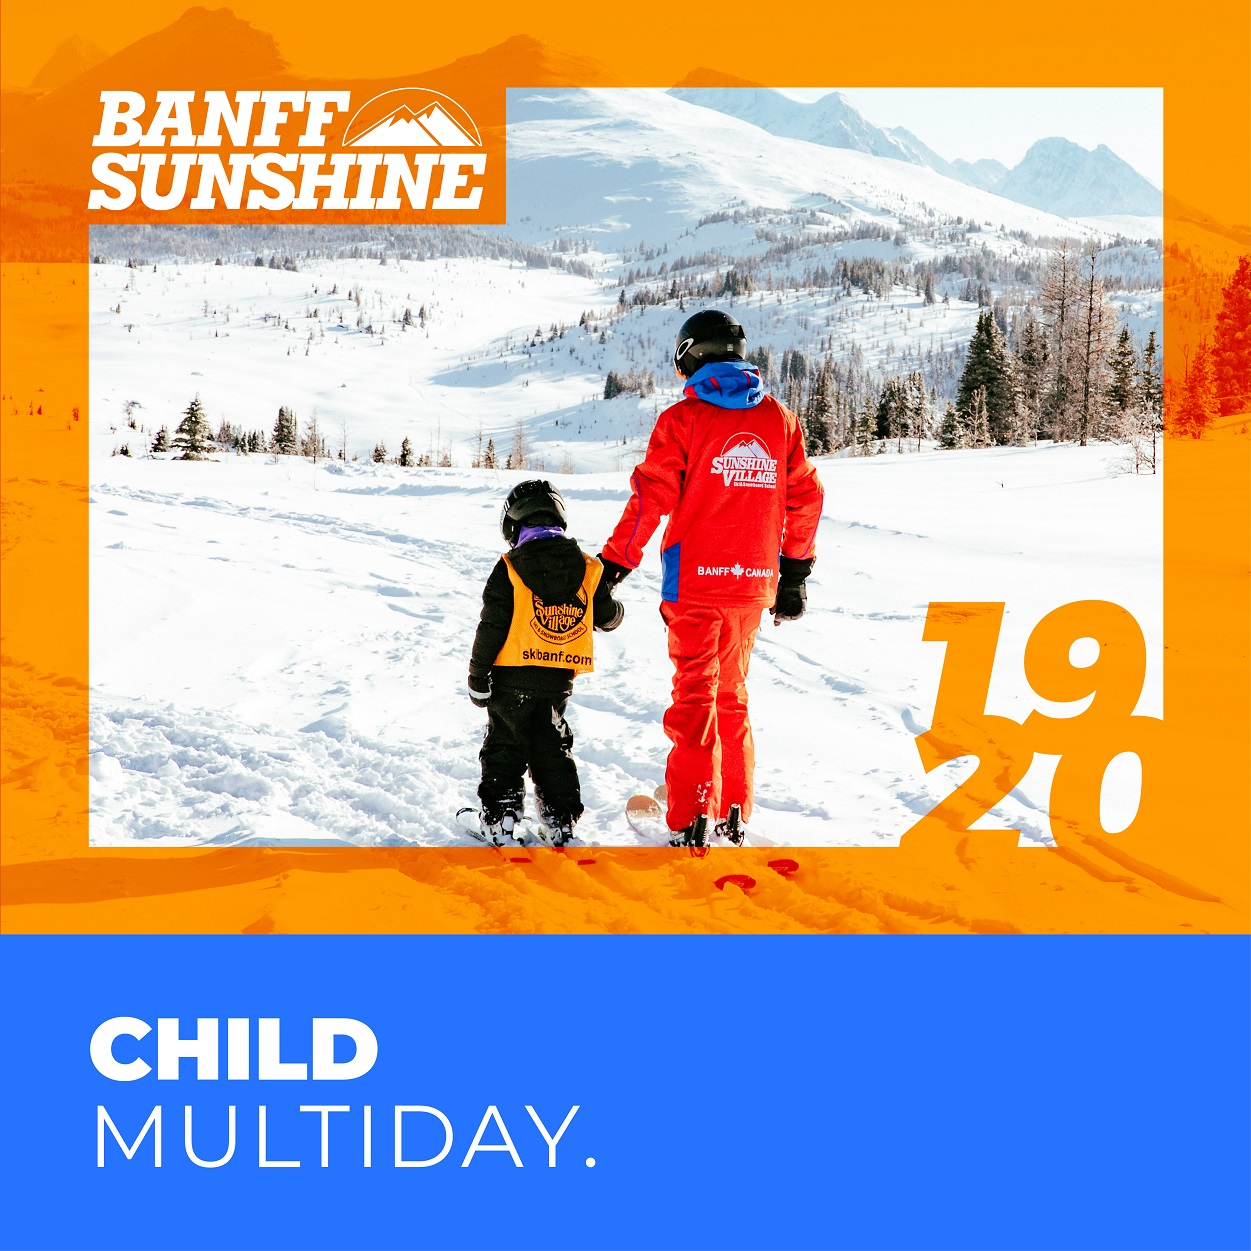 Child Multiday